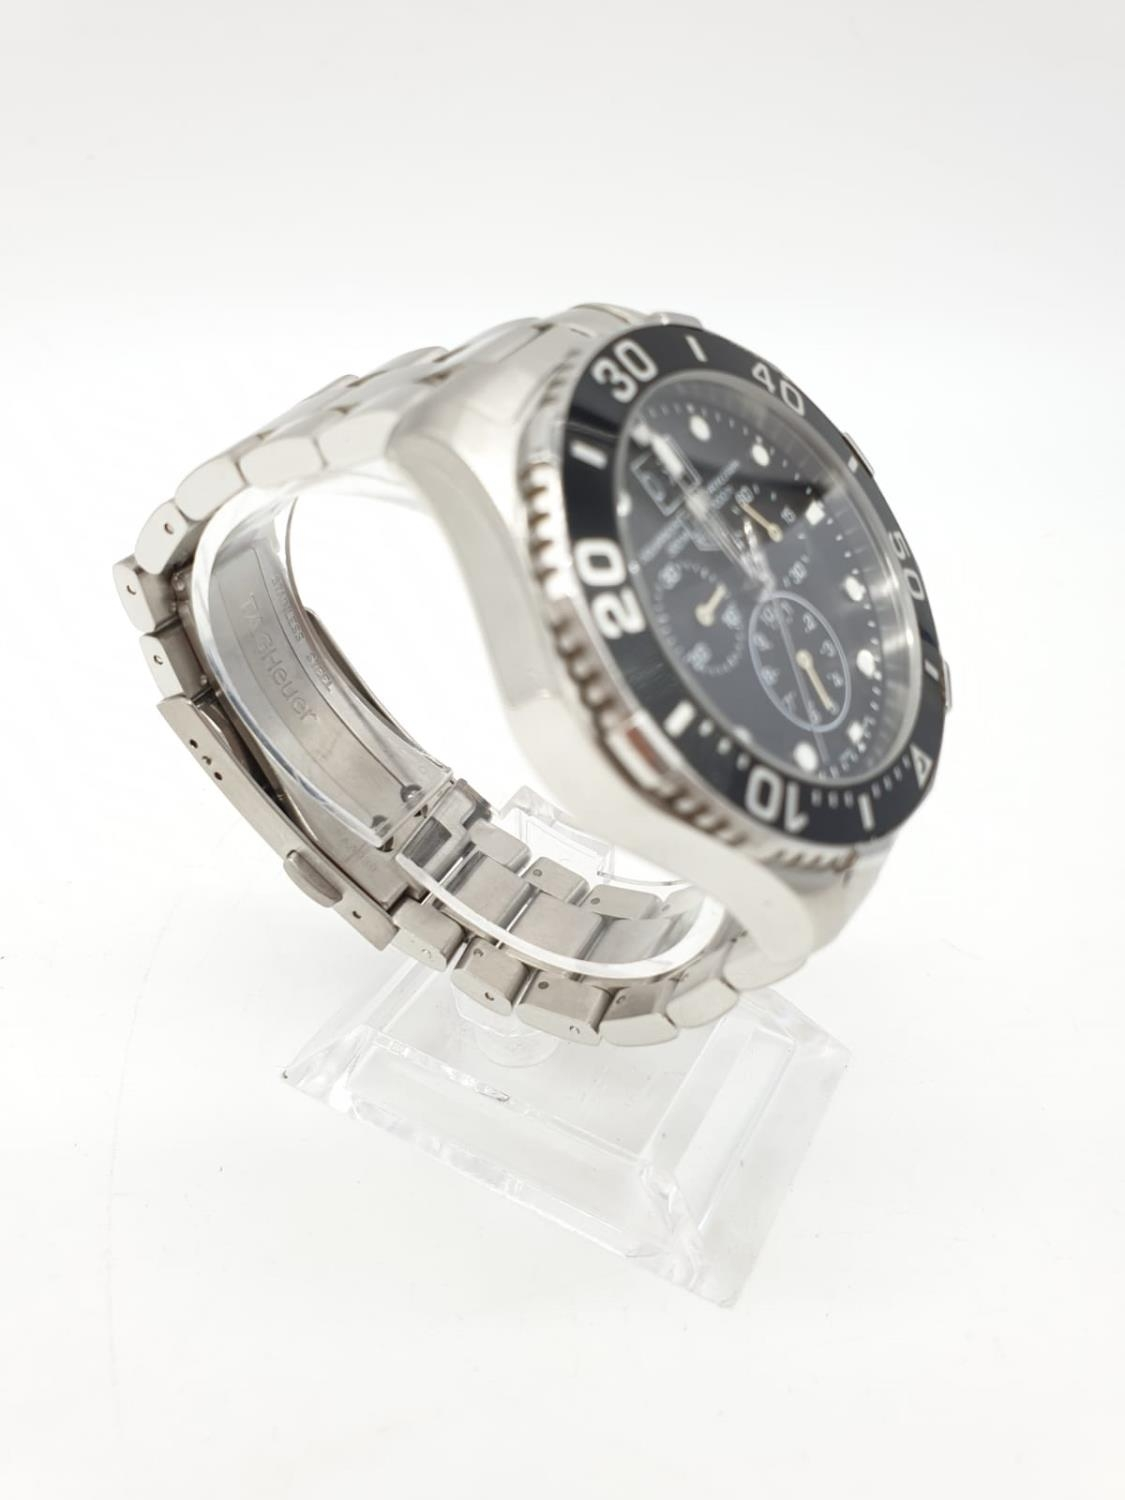 Tag Heuer gents chronograph Aquaracer watch, black face twisted bezel and steel strap, 44mm case - Image 10 of 14